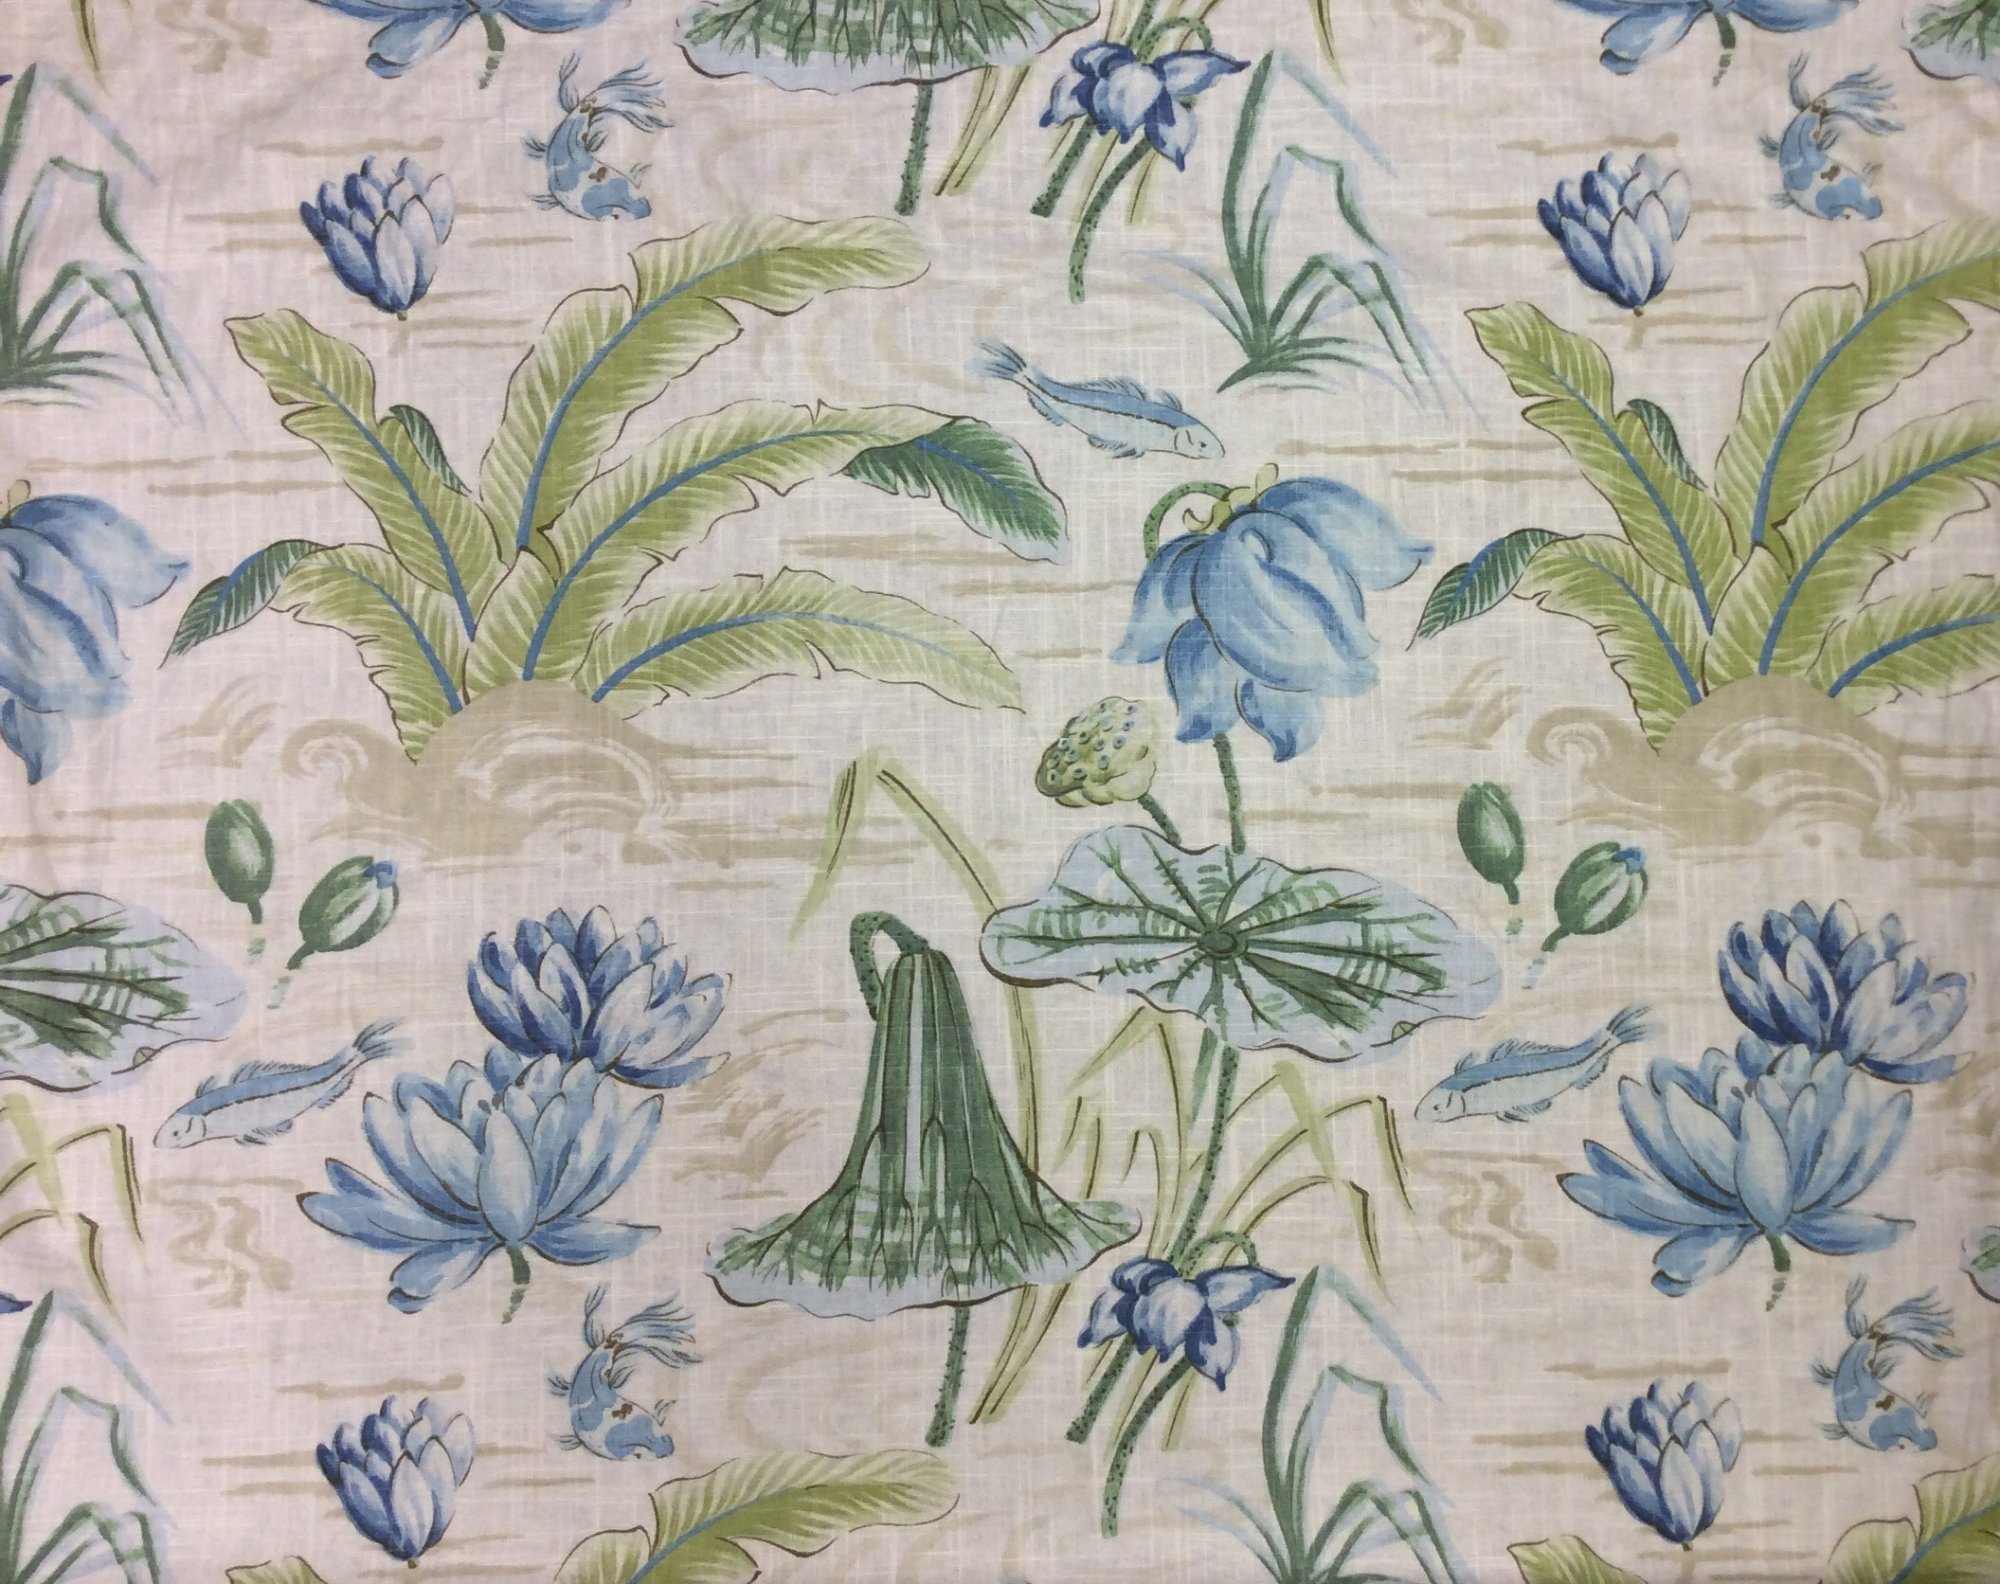 Water Lilly Floral Water Color Koi Fish Print Large Scale Flower Linen Texture Heavy Cotton Fabric Drapery Fabric HD378